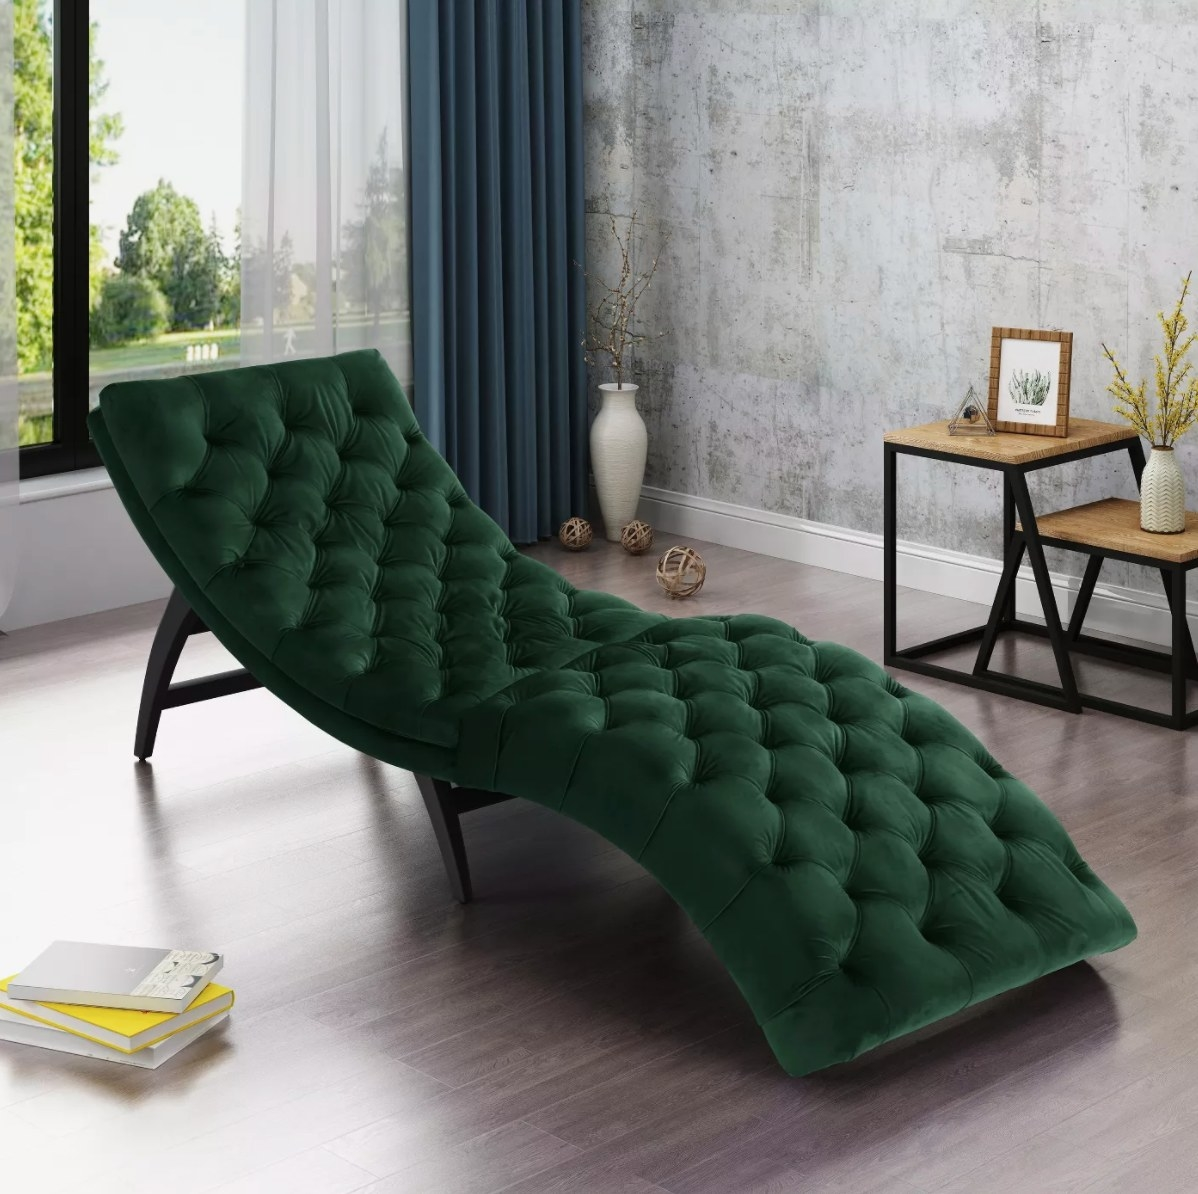 The tufted chaise lounge in emerald next to a slack of books and wood end table